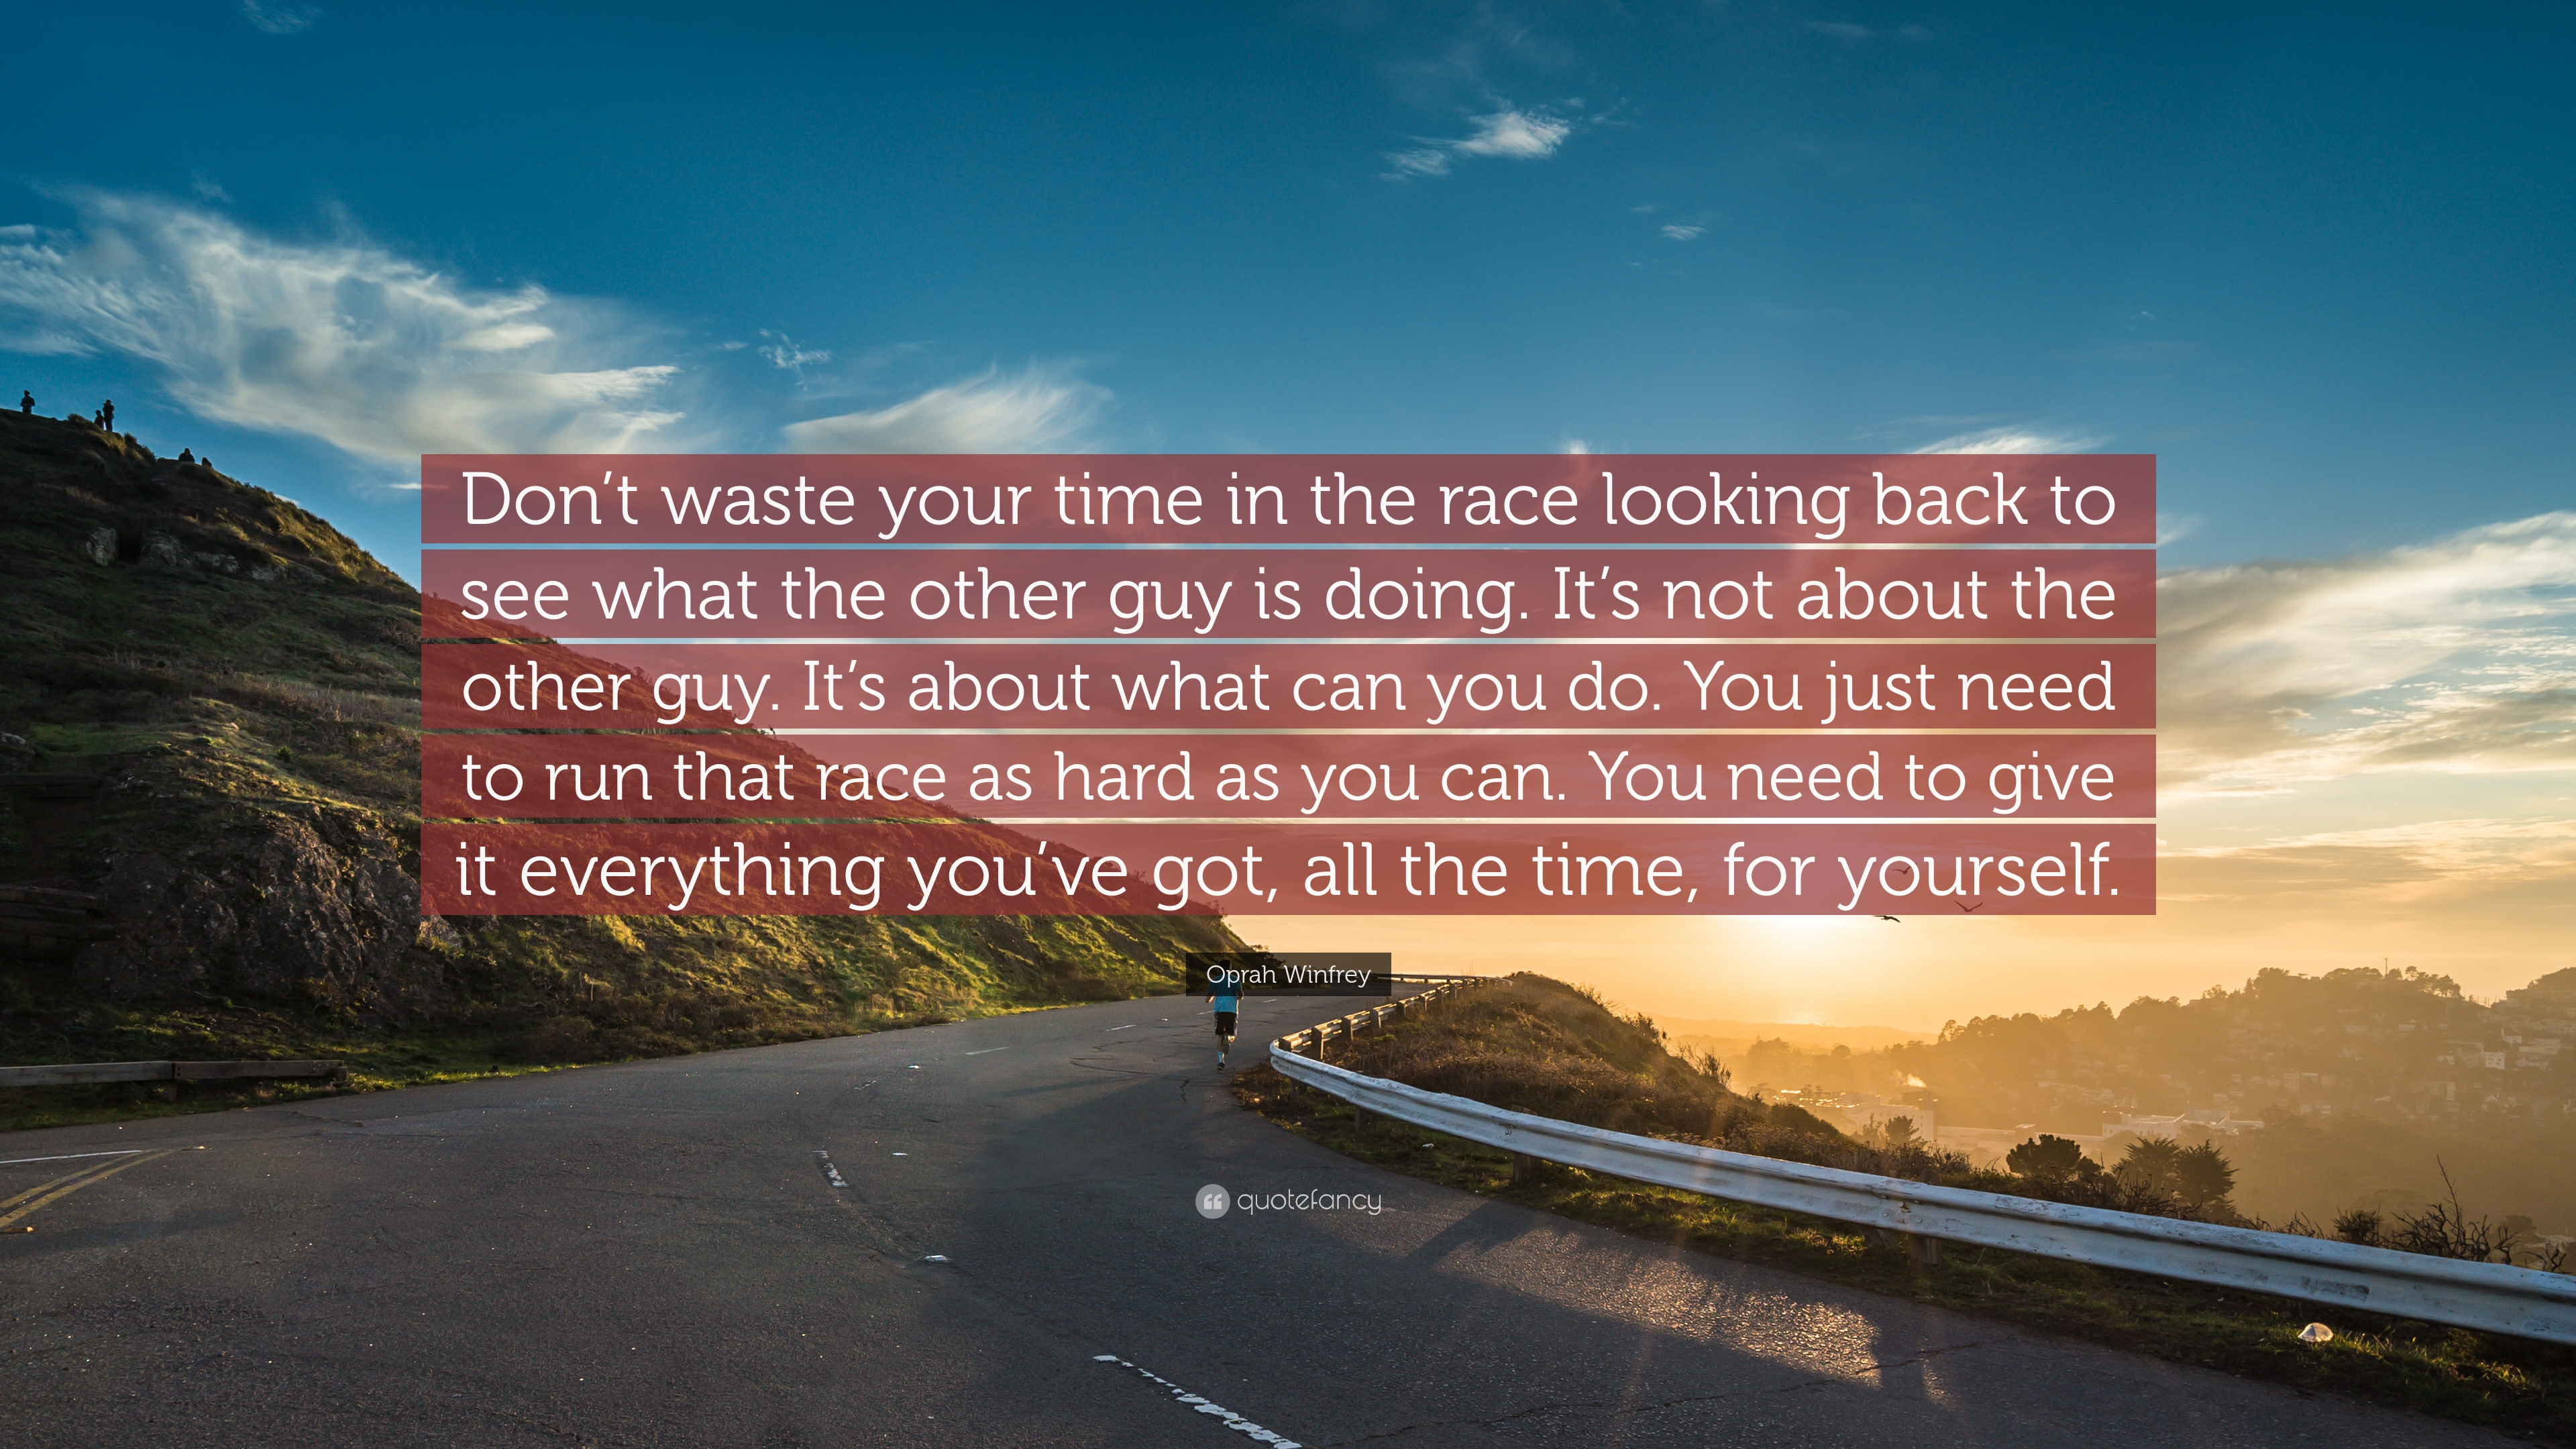 oprah winfrey quote don t waste your time in the race looking back